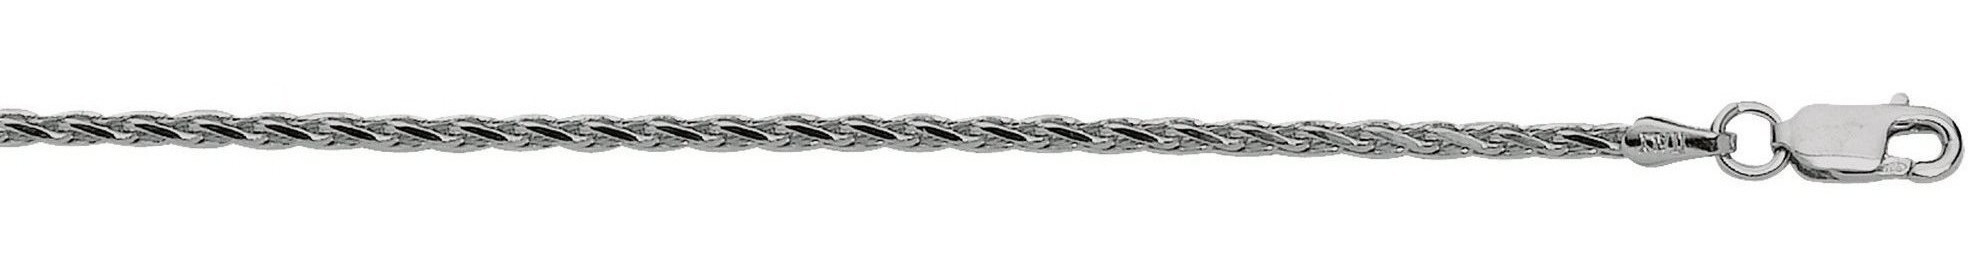 "18"" 2.2mm (0.09"") Rhodium Plated Polished Diamond Cut 925 Sterling Silver Spiga Chain w/ Lobster Clasp"